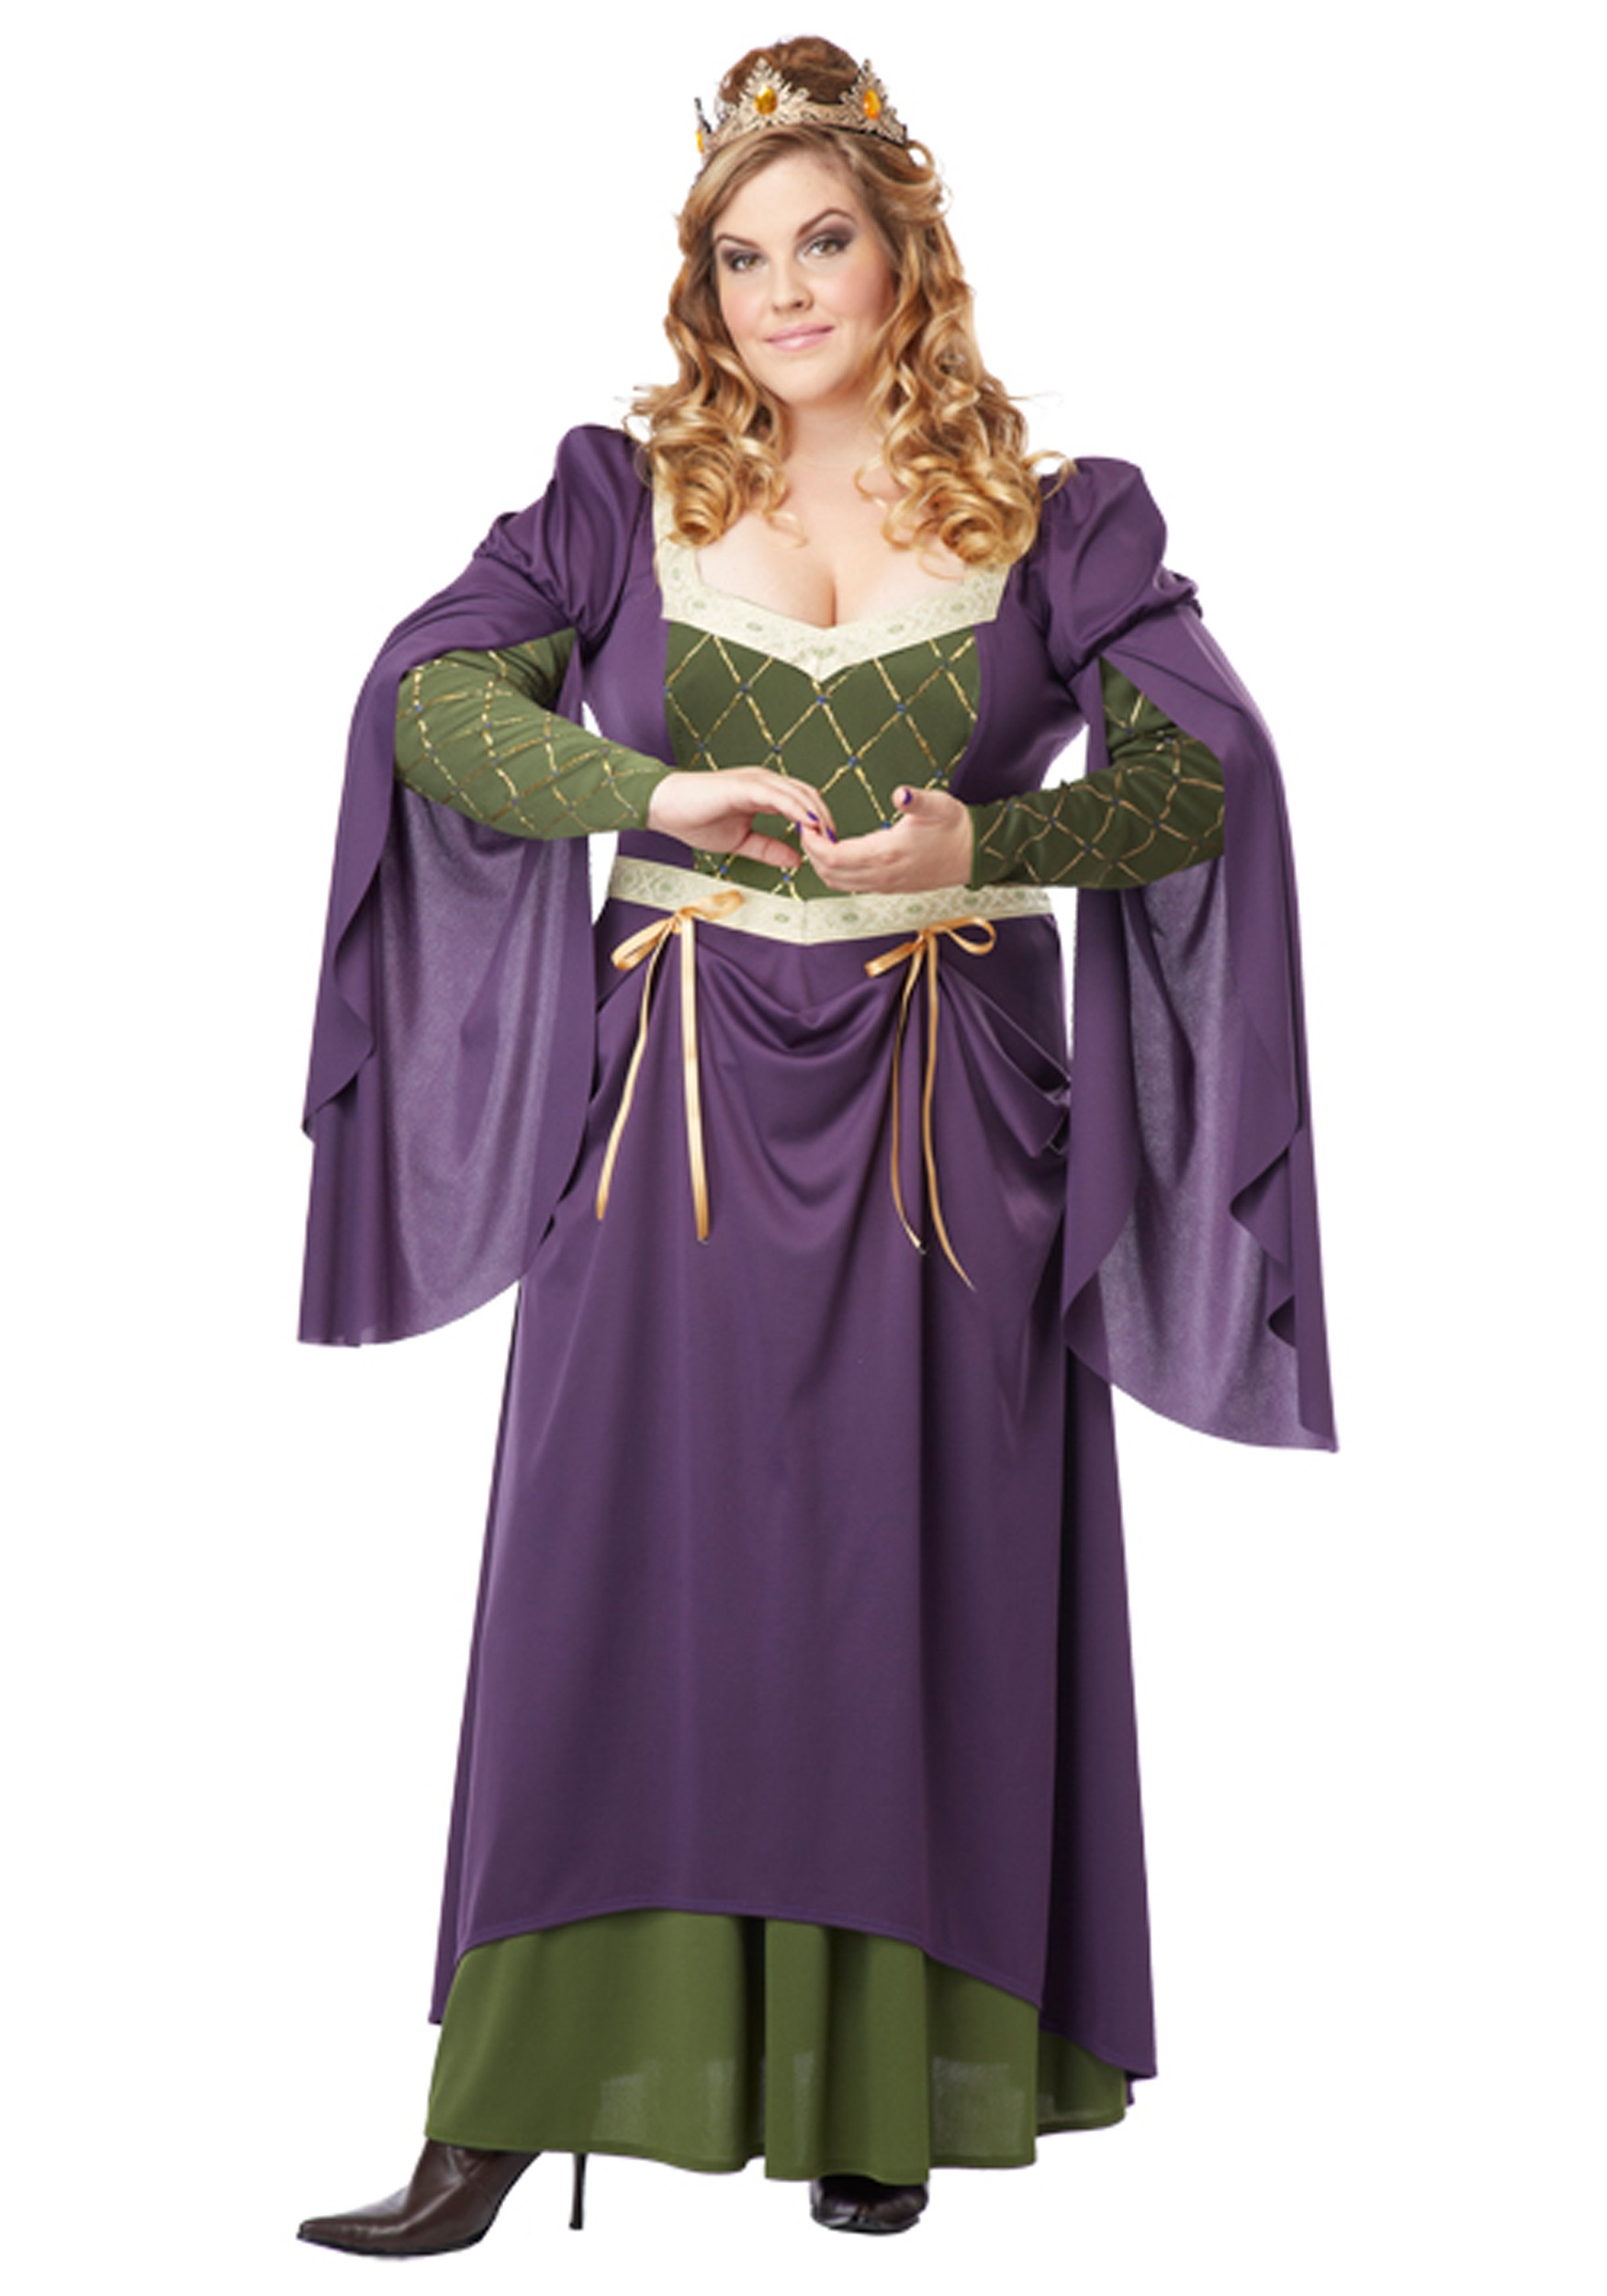 Plus size lady in waiting costume halloween costumes for Plus size hocus pocus shirt